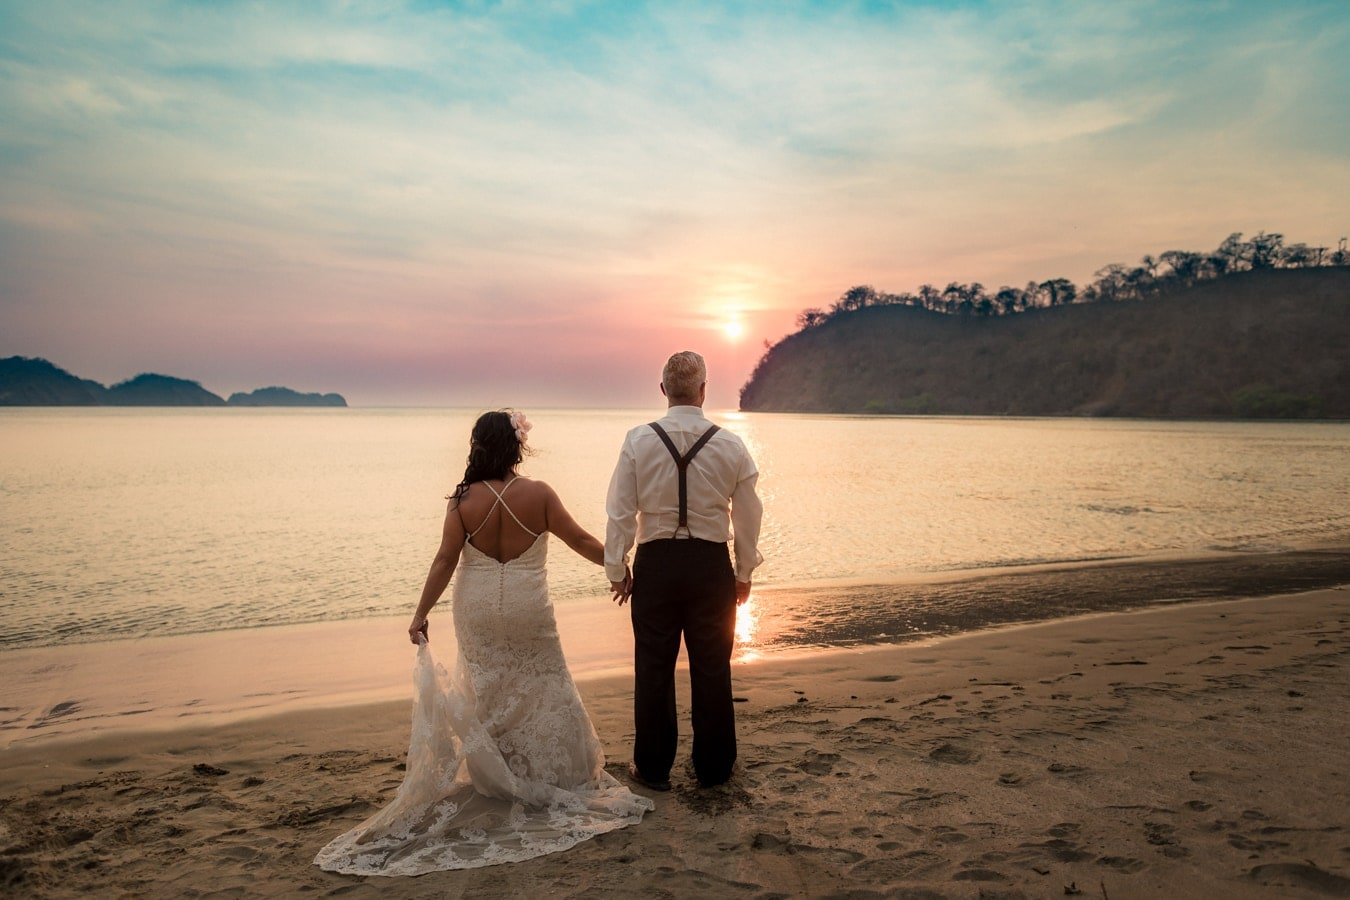 Bobbi-Henri-beach-weddng-portraits-Dreams-Las-Mareas-Resort-Costa-Rica-1.jpg